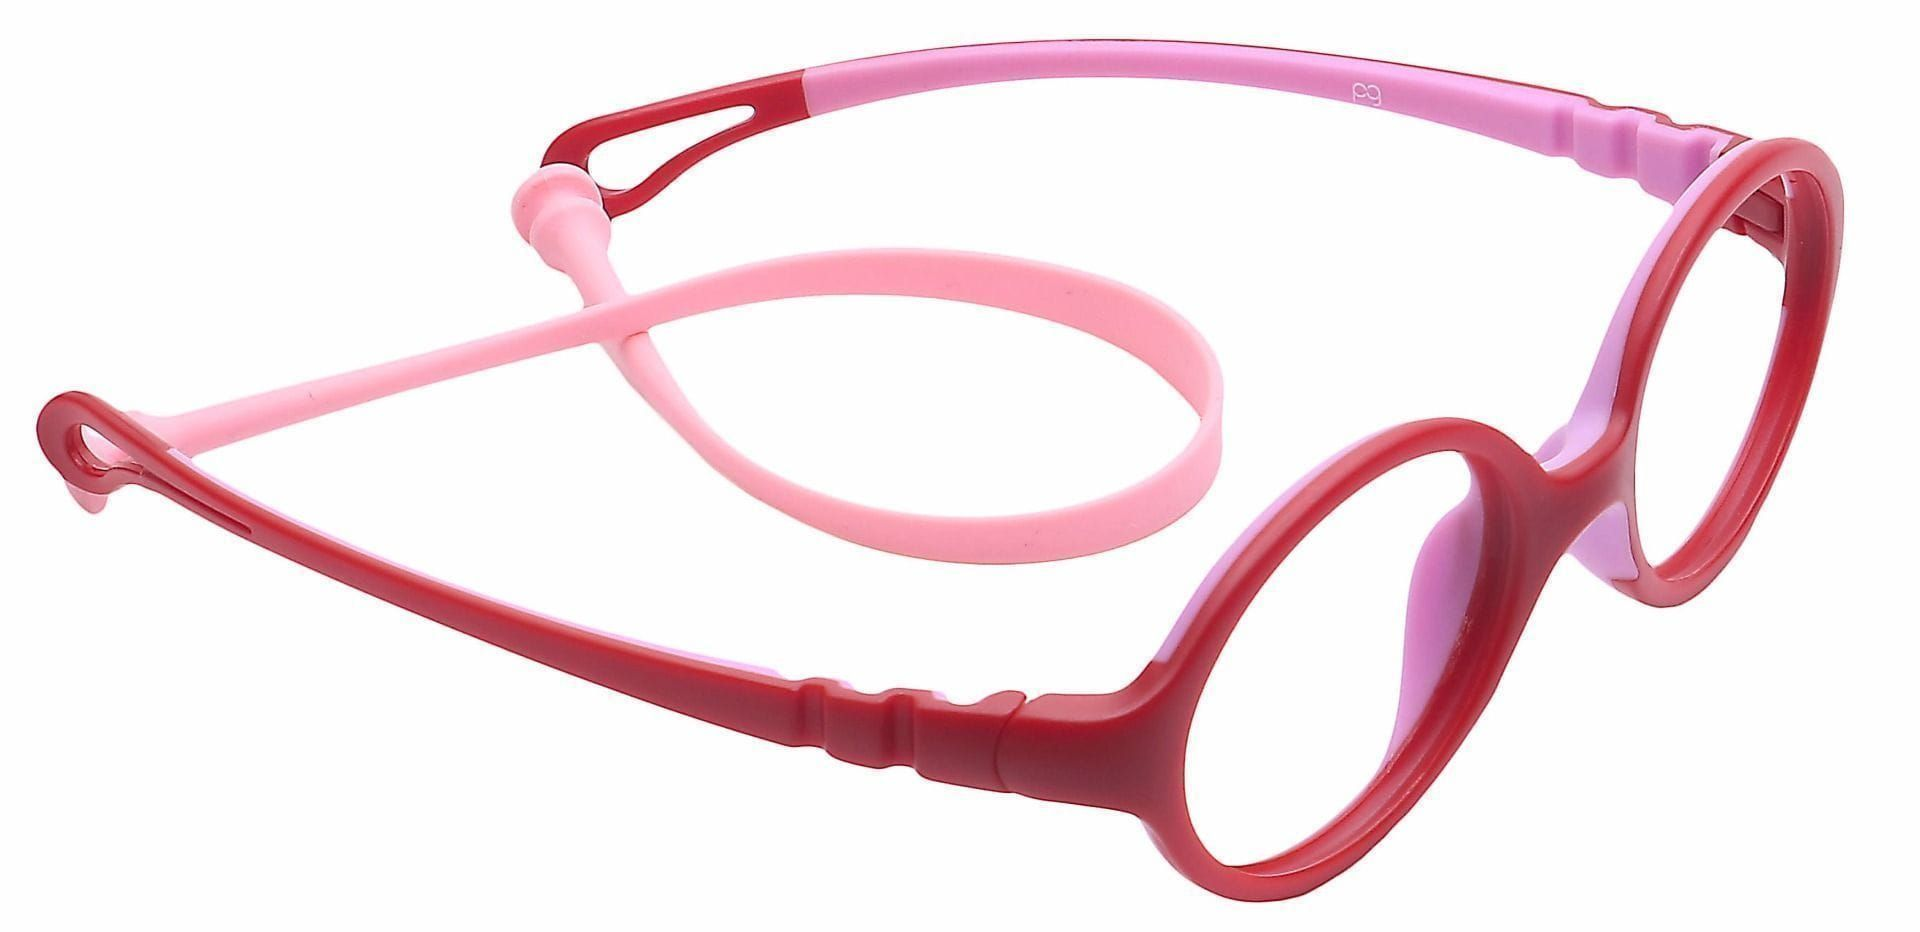 Whimsy Oval Lined Bifocal Glasses - Red